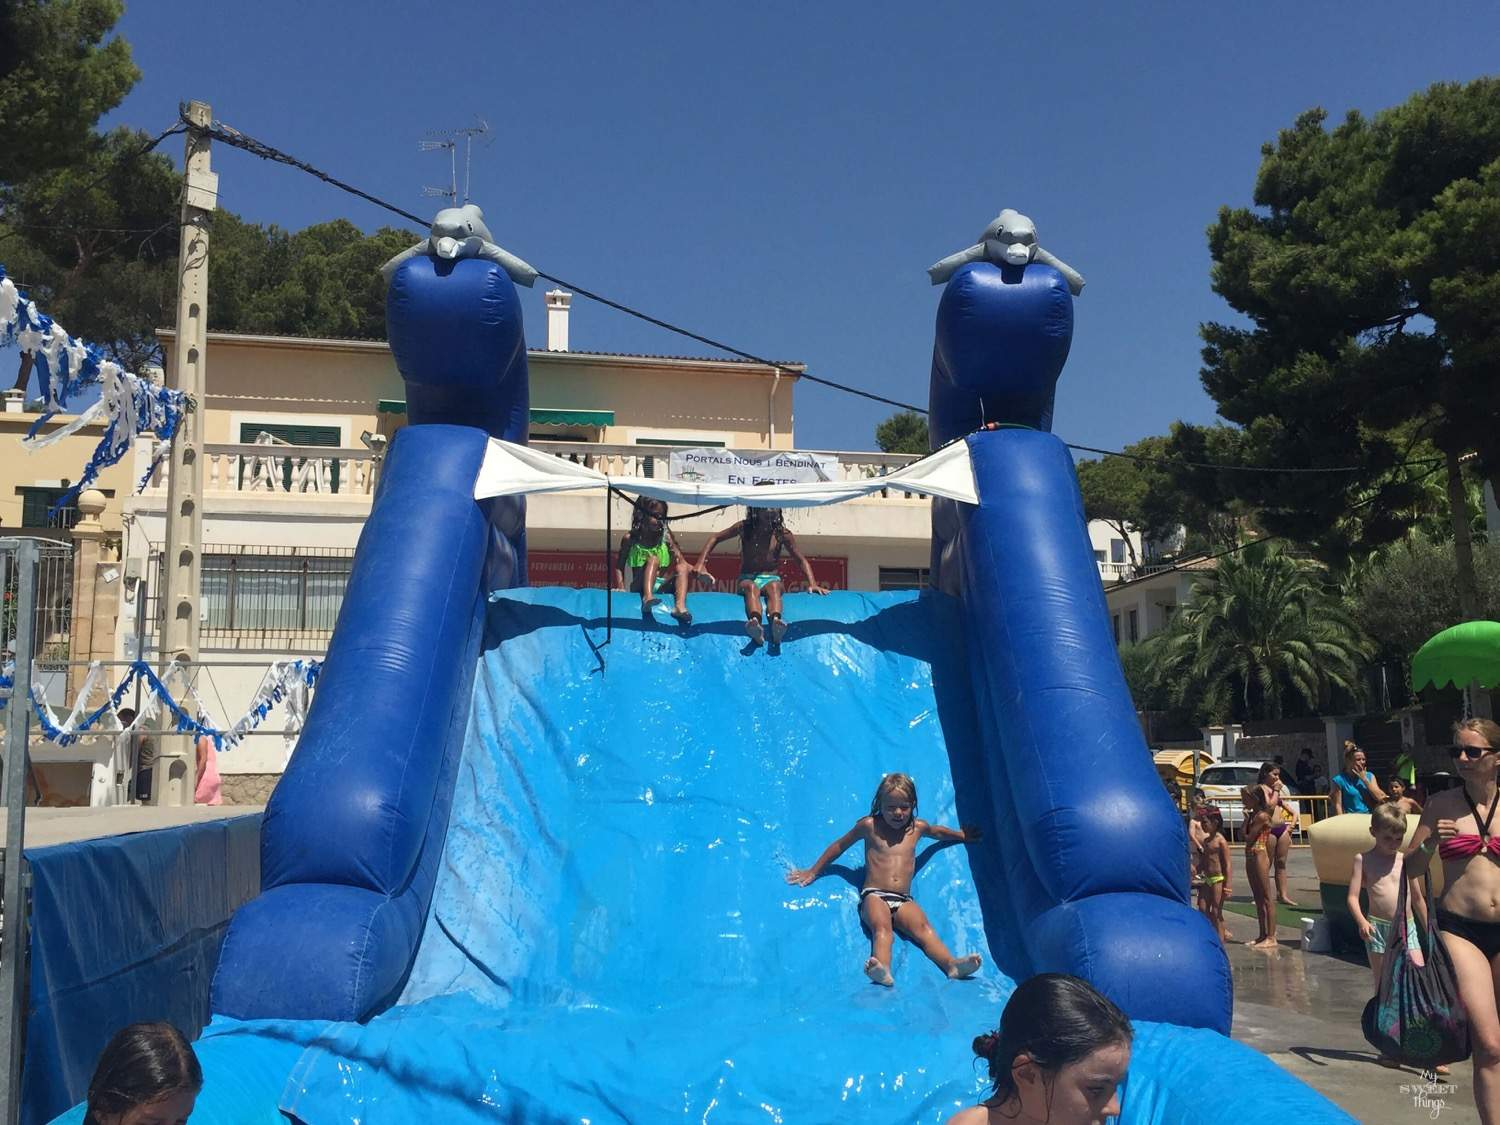 What to do in summer in Mallorca - Water games